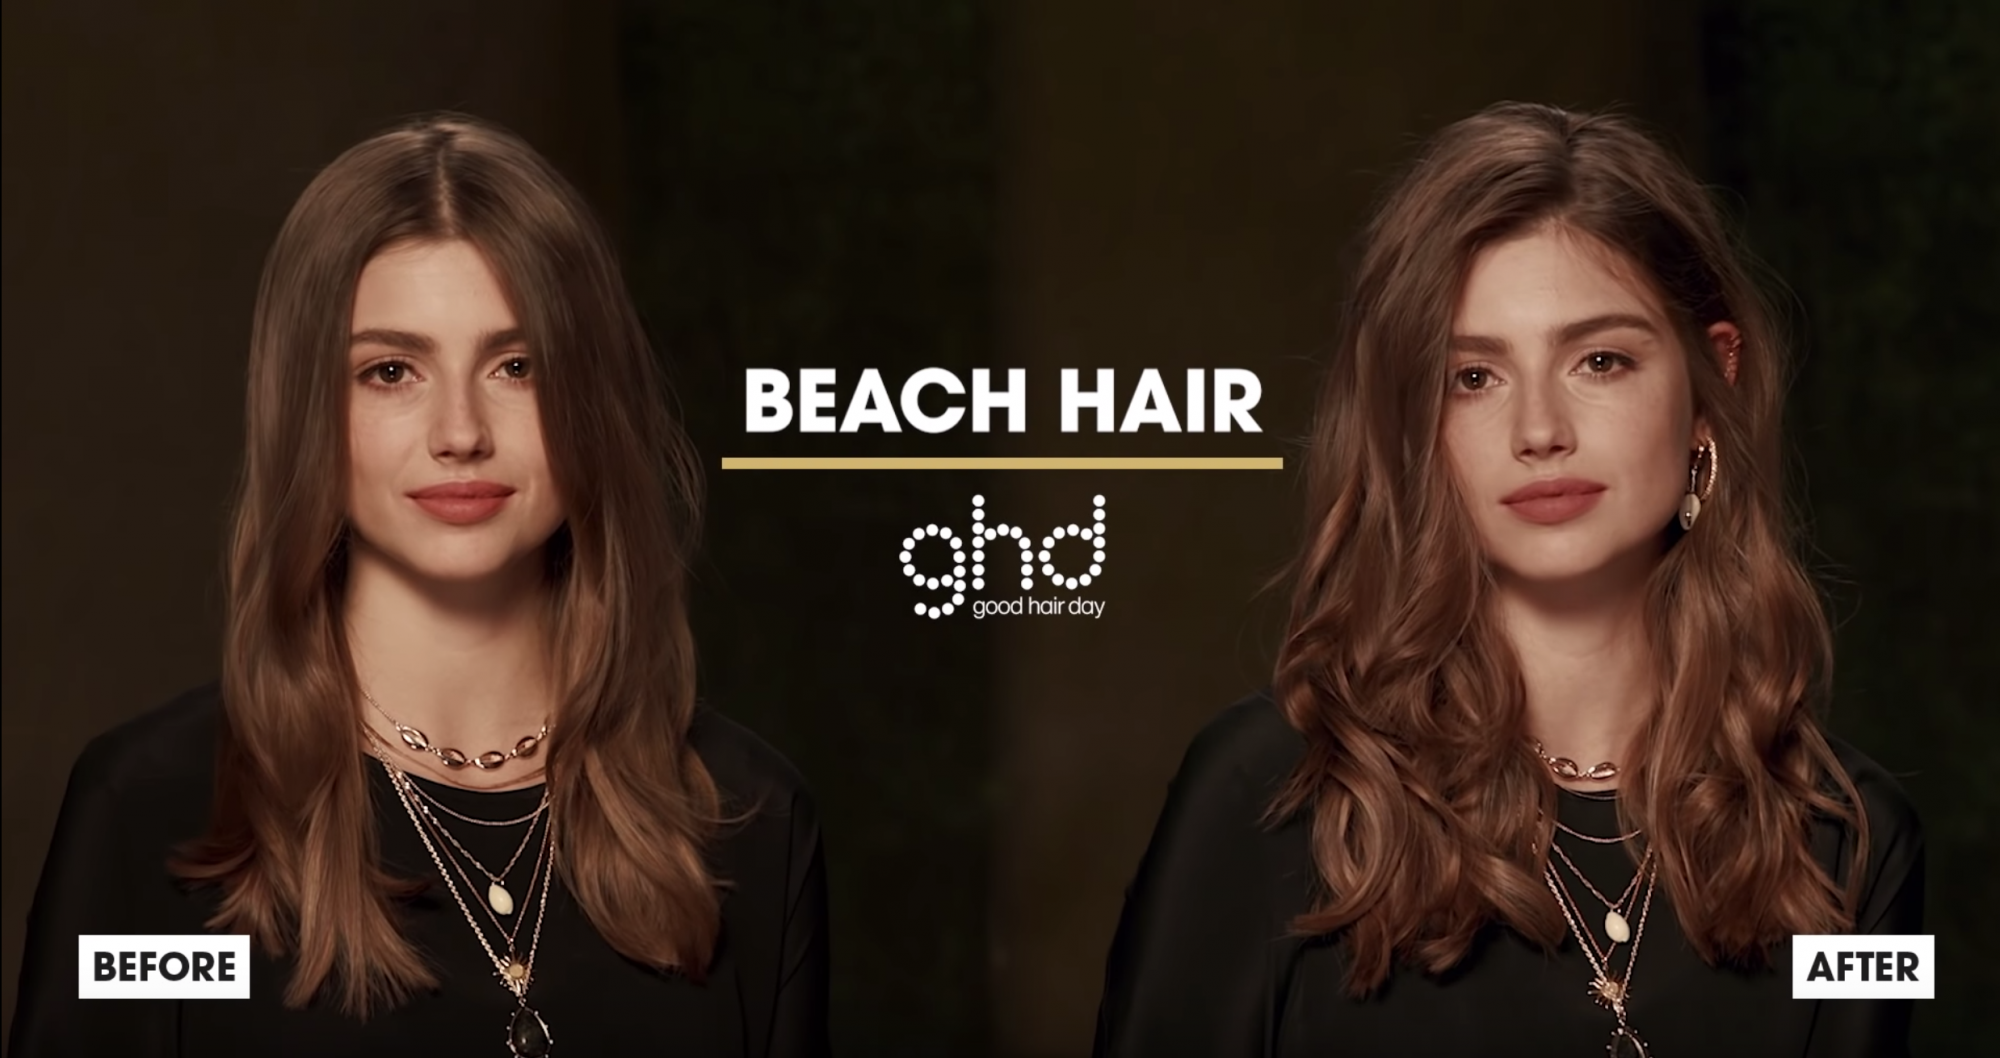 ghd Oracle Curler Before After Beach Hair Model 2019